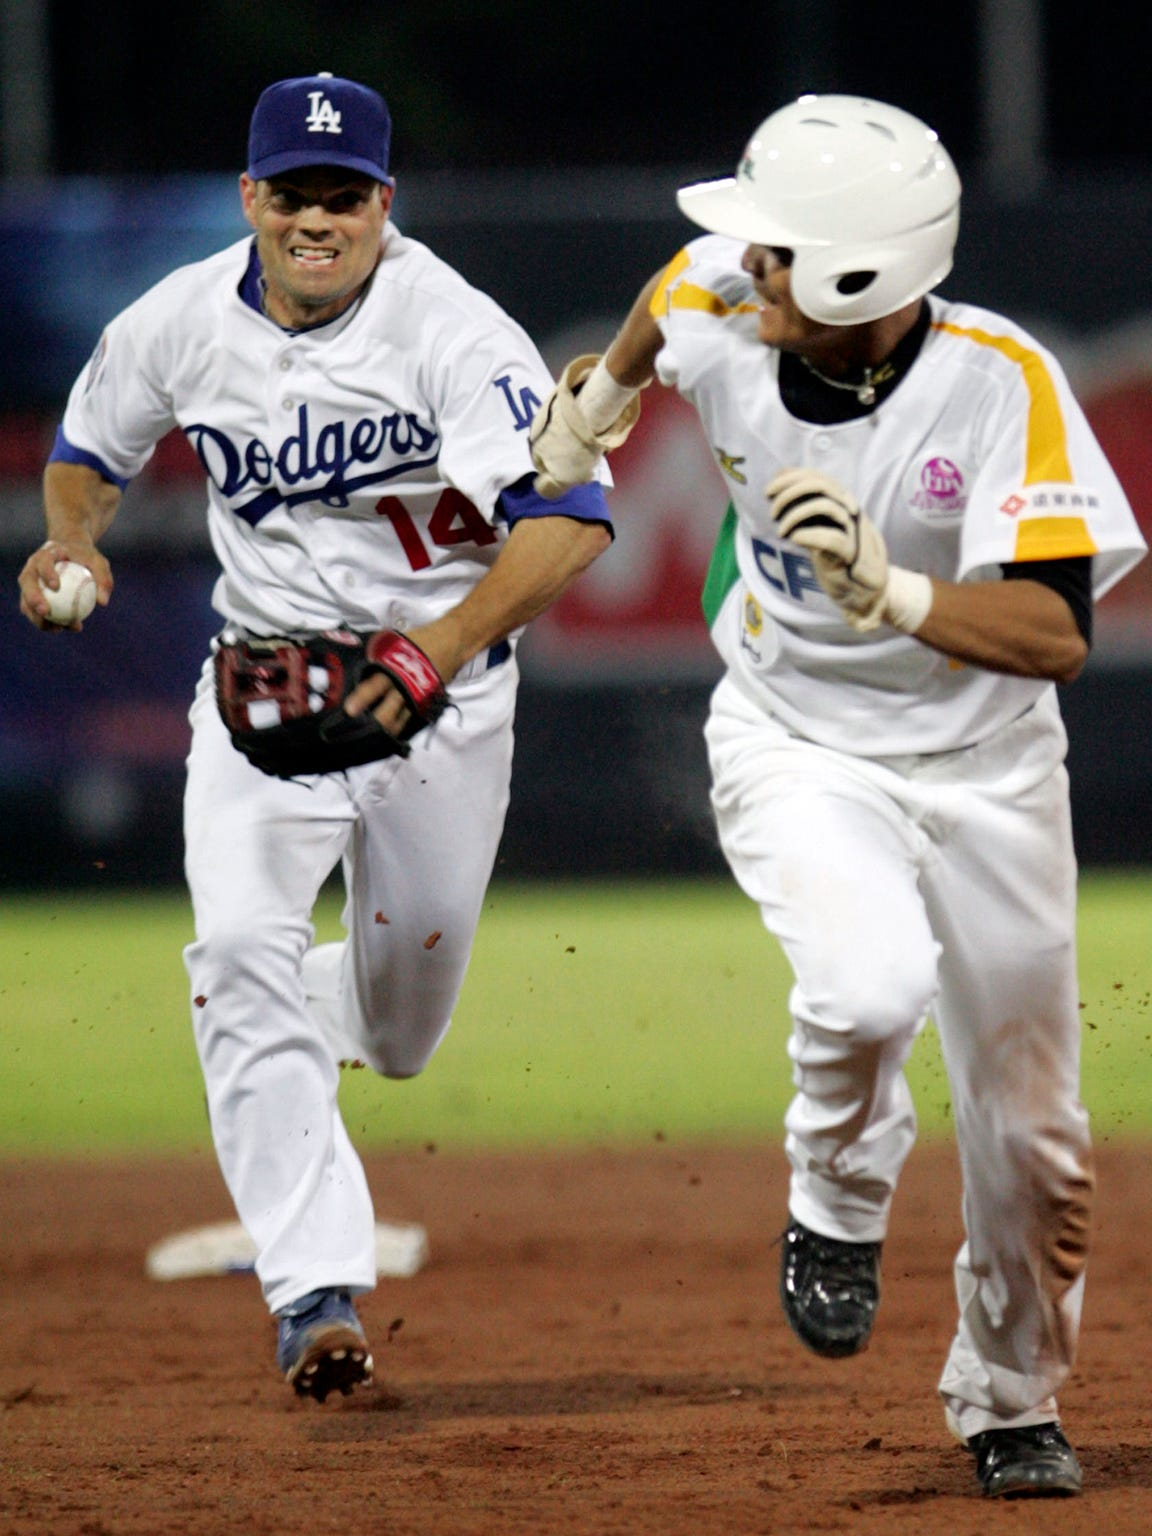 Los Angeles Dodgers' second baseman Jamey Carroll, left runs after Taiwan all-star S.W. Wang, during the first of three exhibition games against Taiwan all-star players in Taipei, Taiwan, Friday, March 12, 2010. Taiwan beat the Dodgers 5 to 2. (AP Photo/Wally Santana)